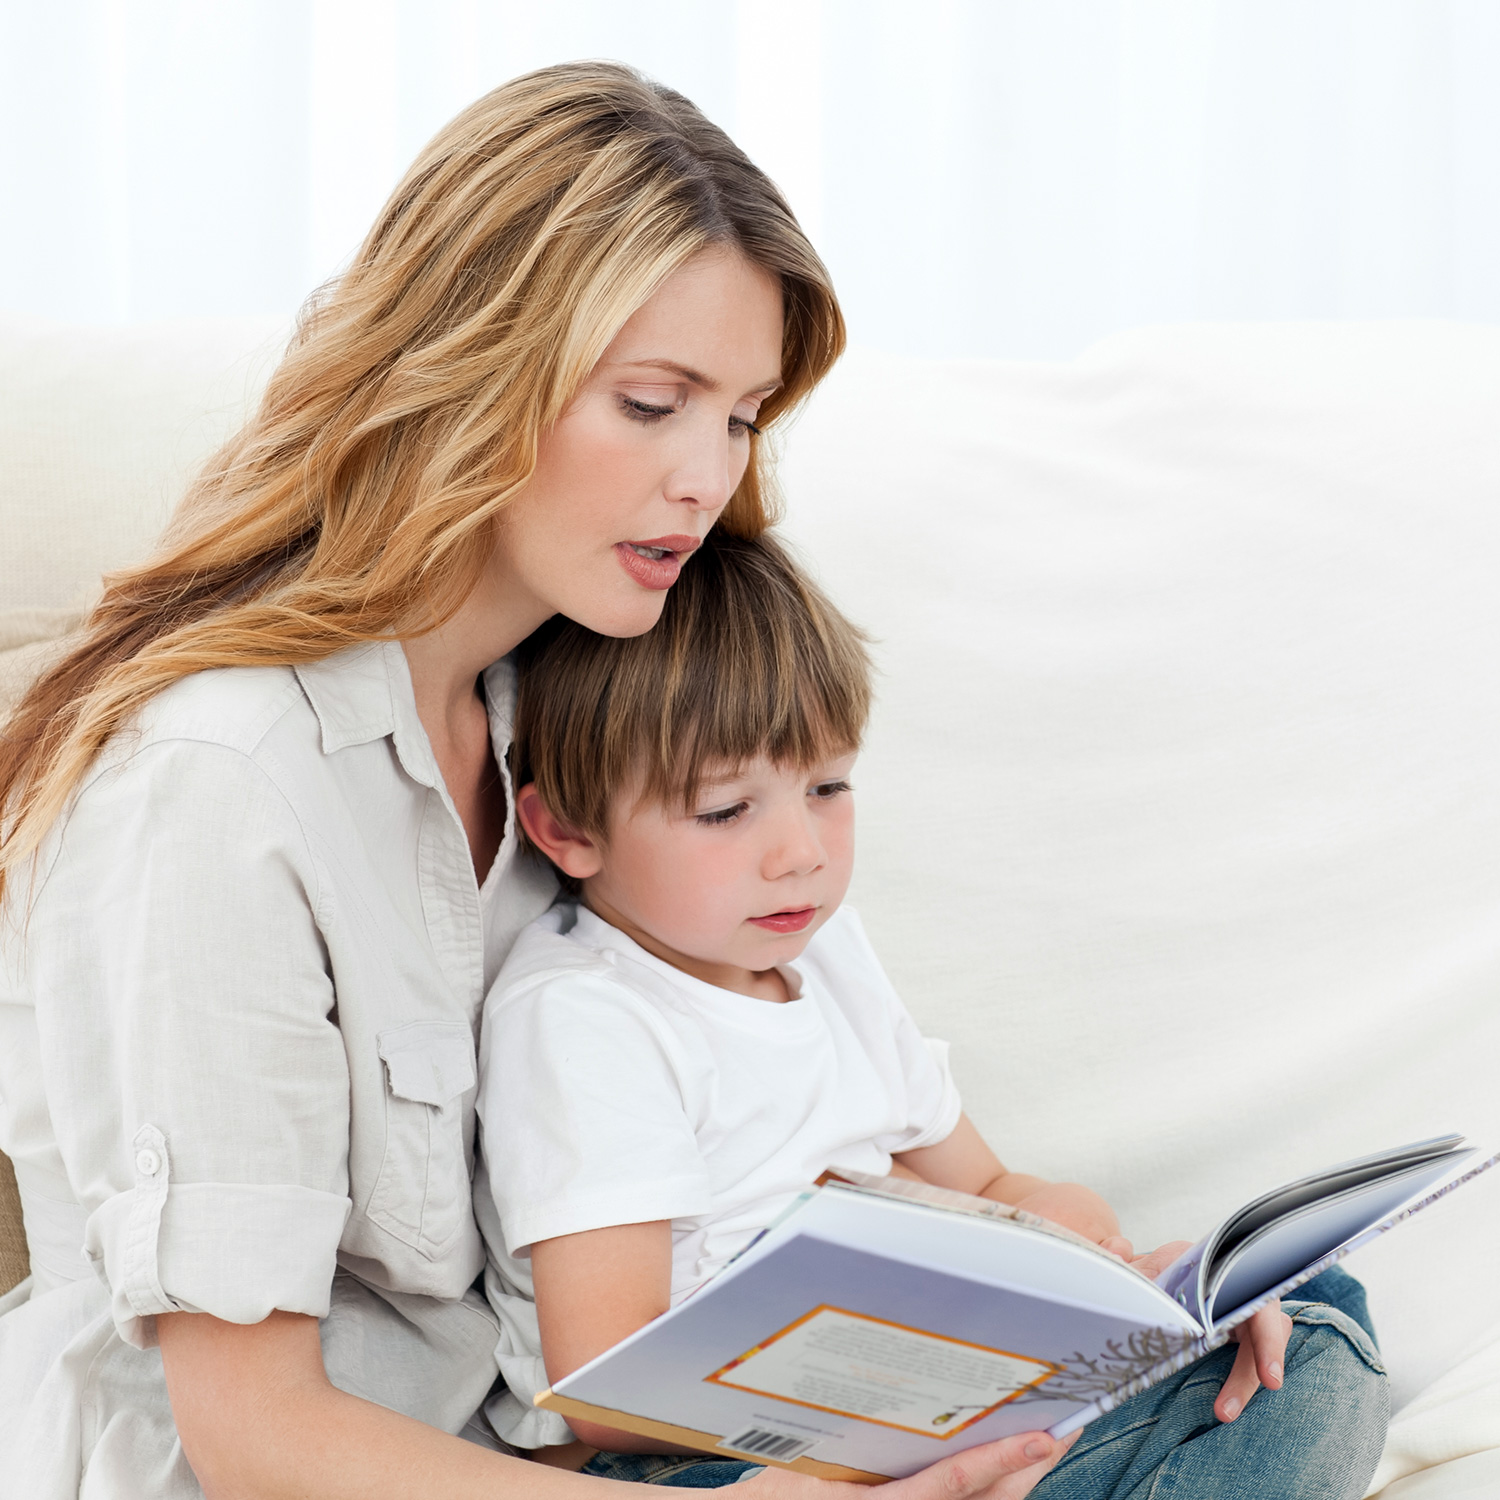 mother-child-reading-book